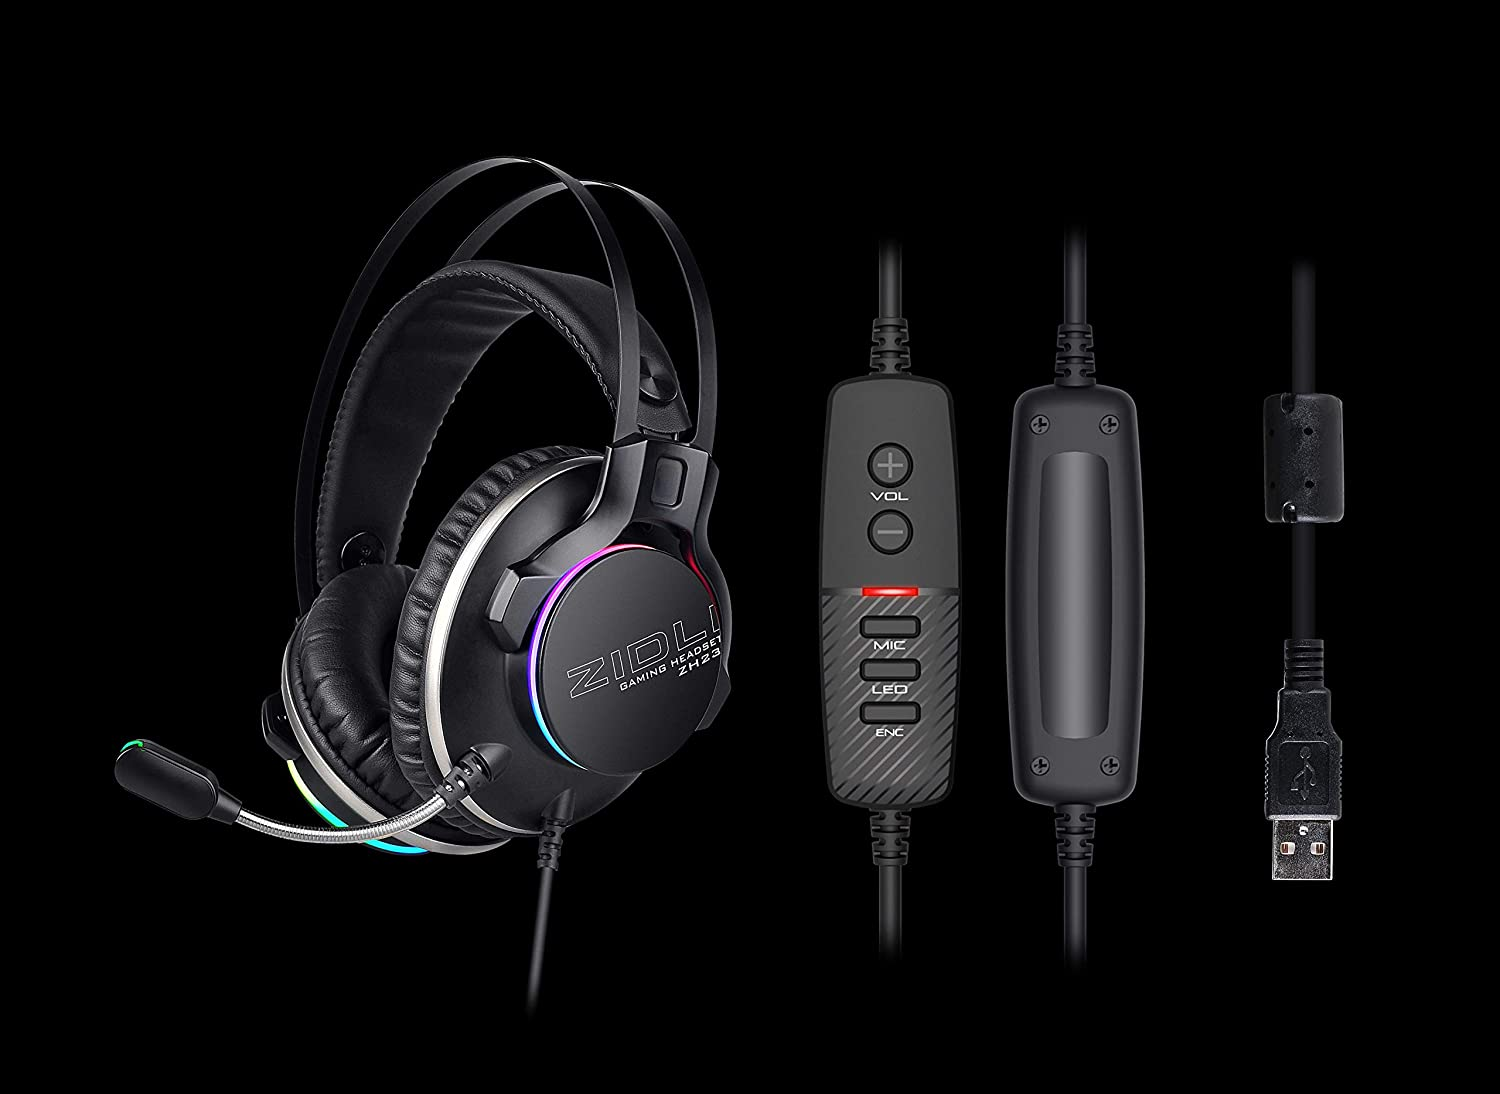 Latest RGB Seven Color Lighting Gaming Headset ZIDLI ZH23 7.1 Surround Sound Stereo with Control Panel for PS4, PC, MacBook, iMac, Swich with Mic LED,Noise Cancelling MIc